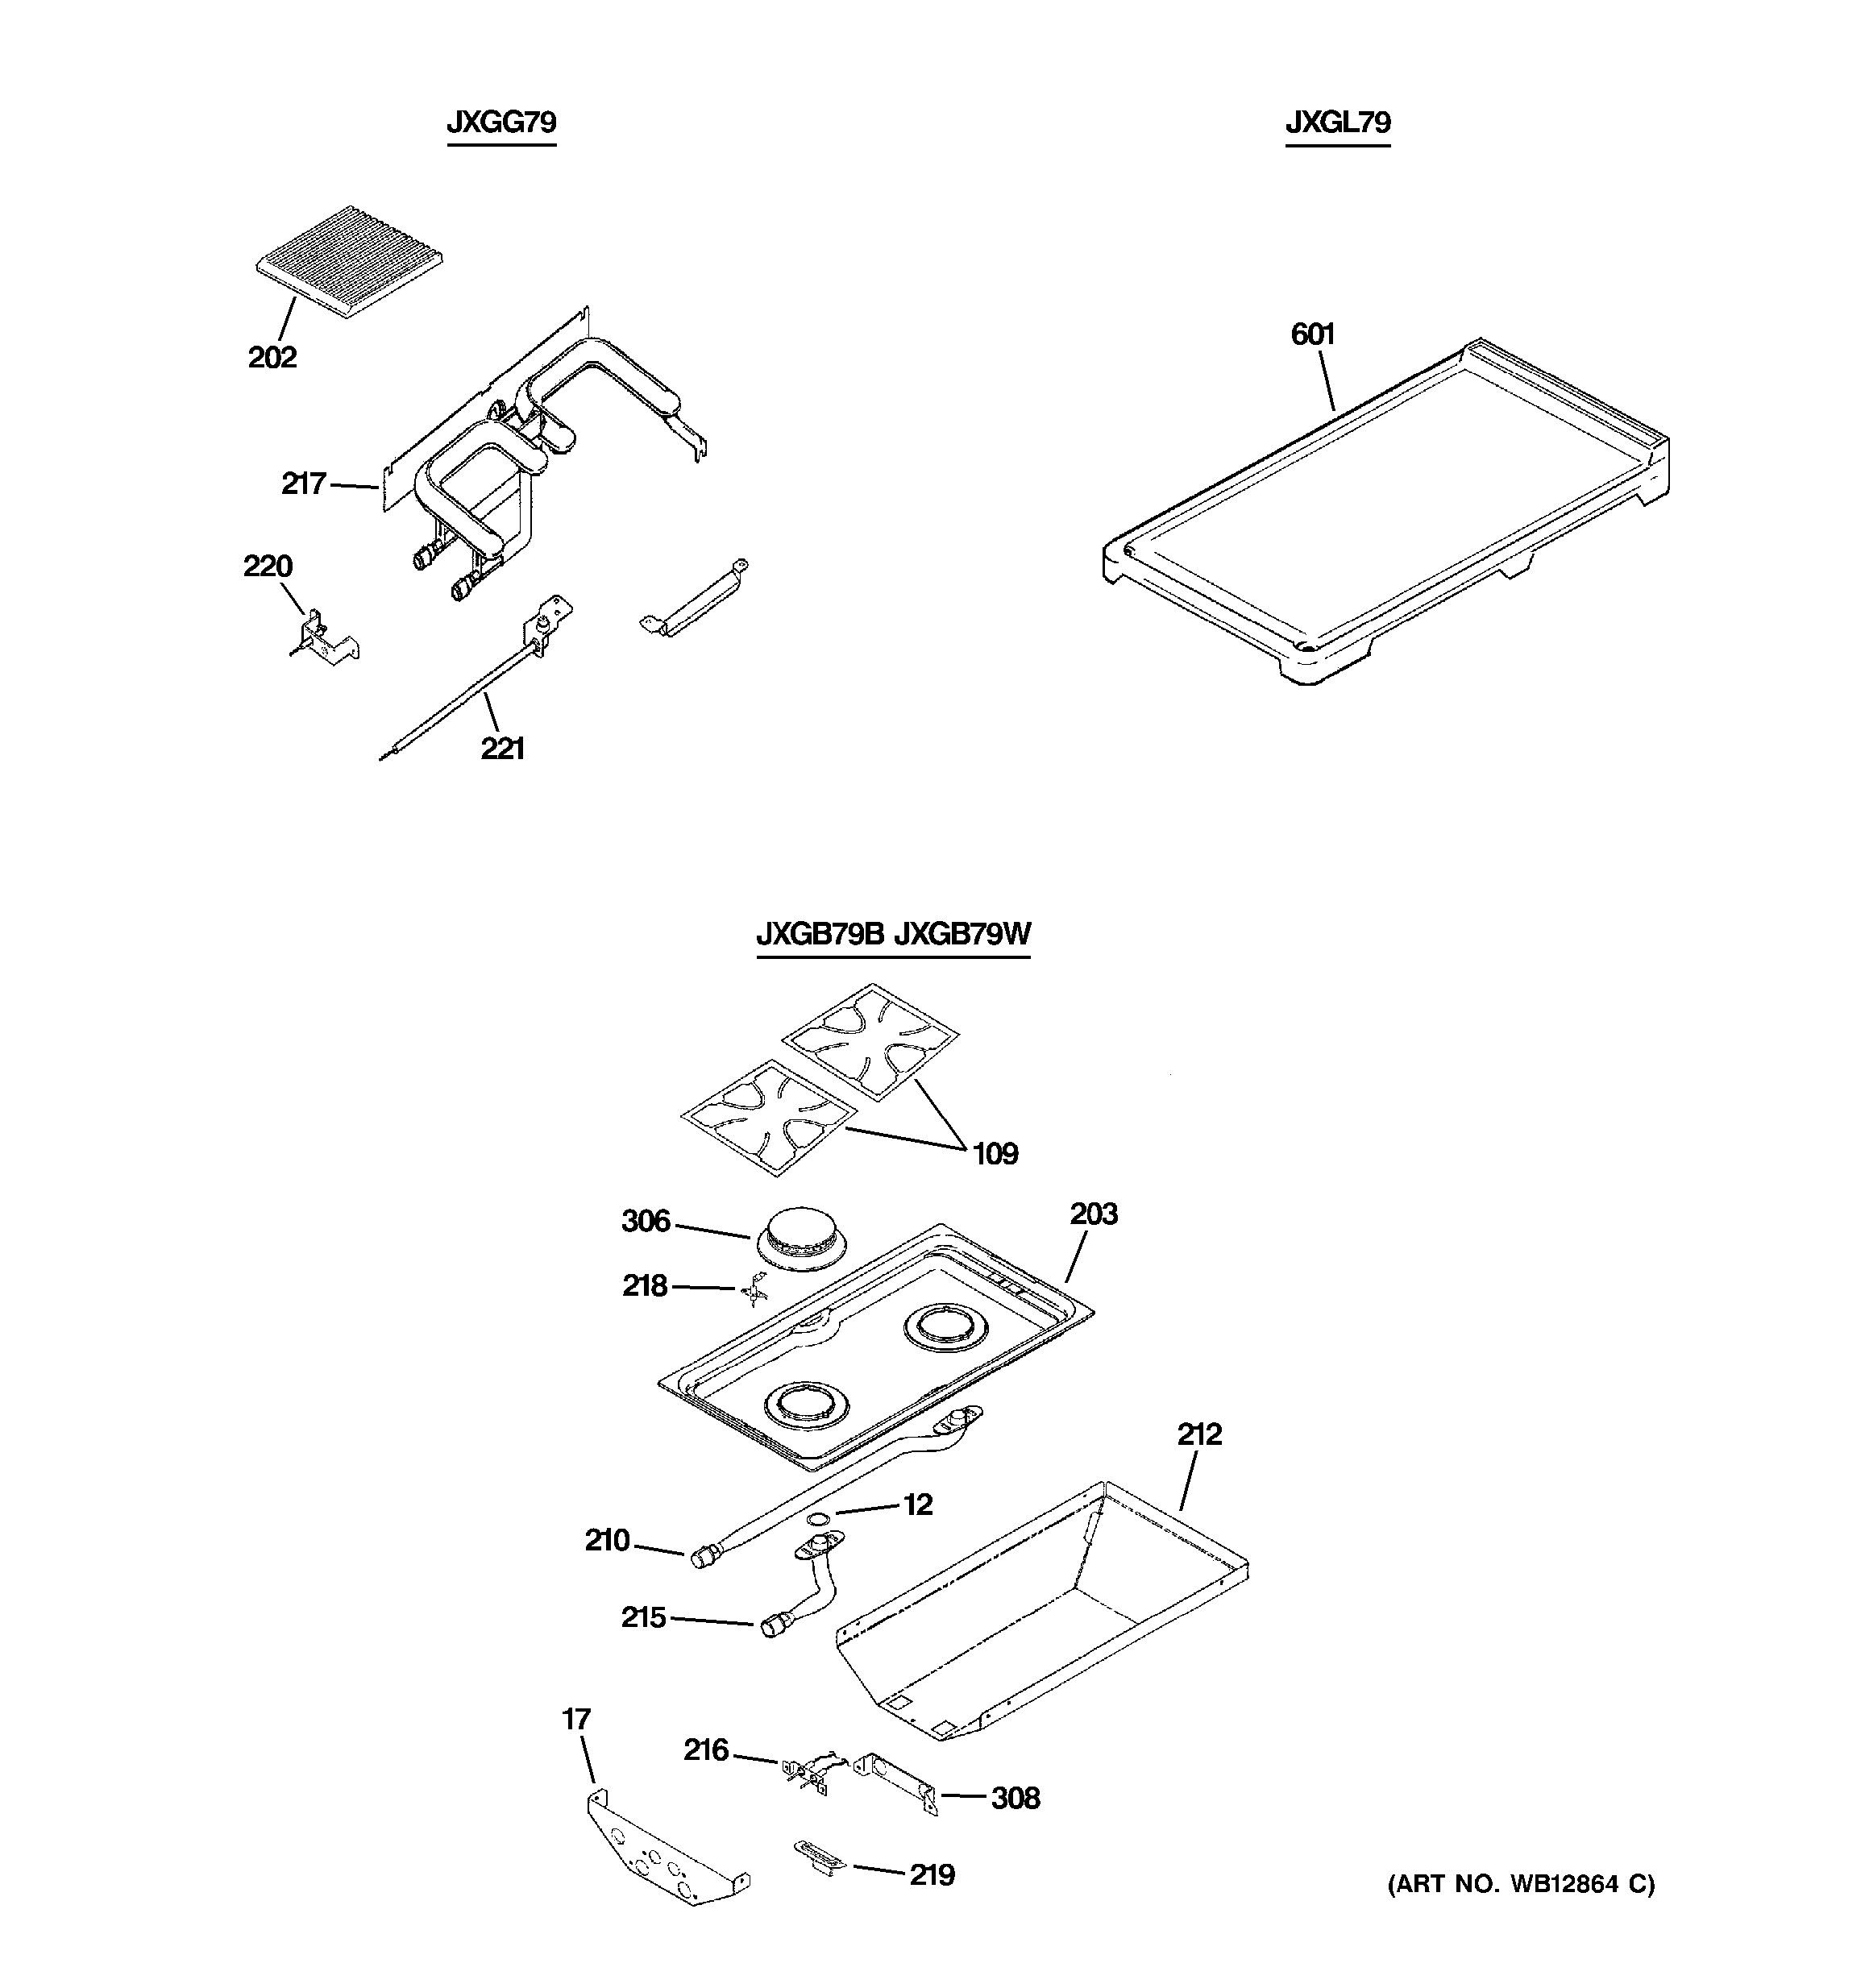 Assembly View For Accessory Modules